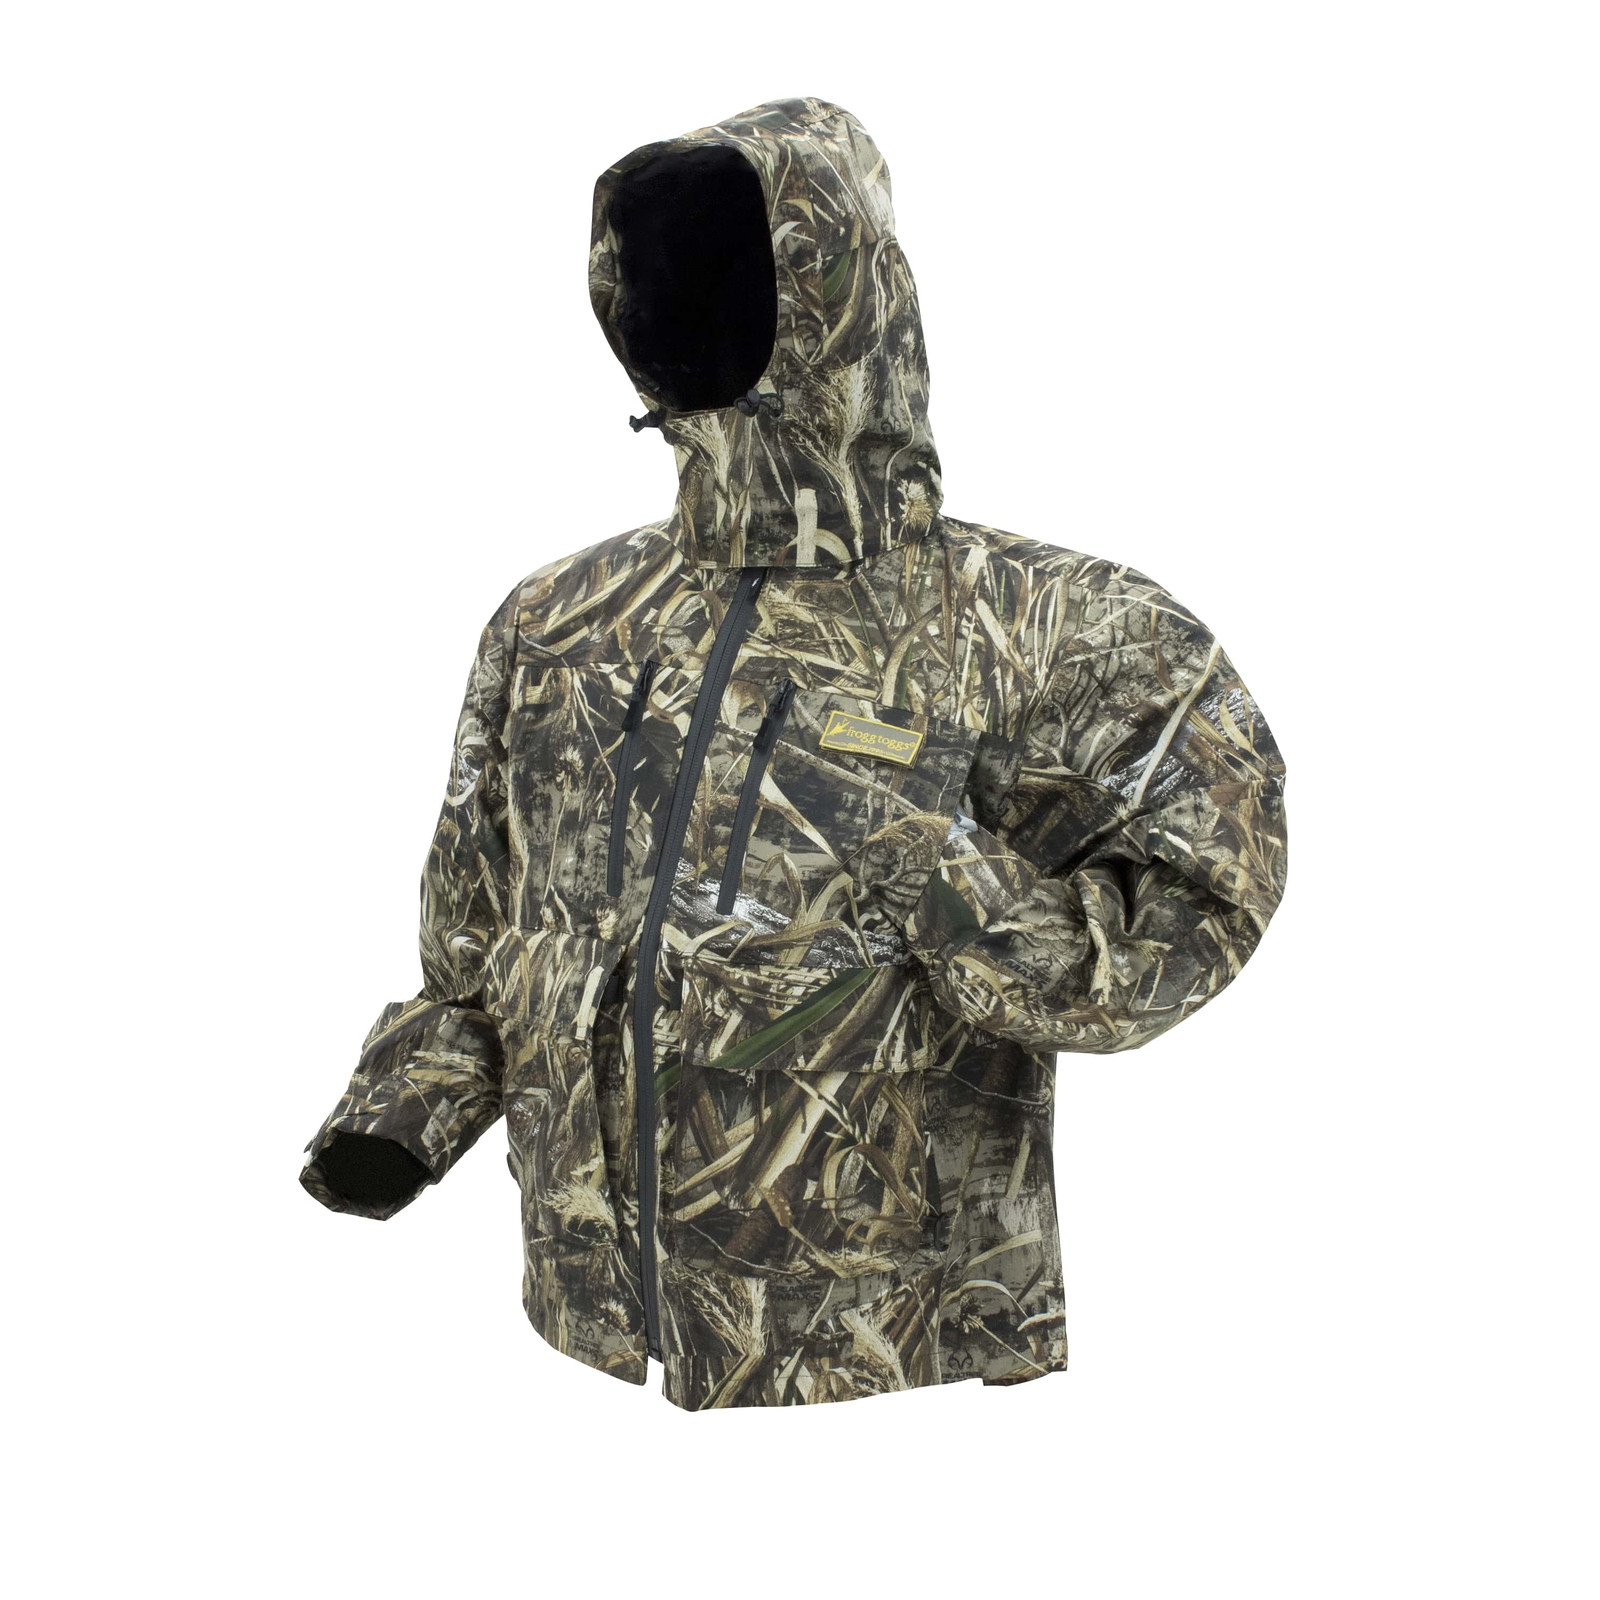 PFW63161_Realtree-Max5_thumbnail-large